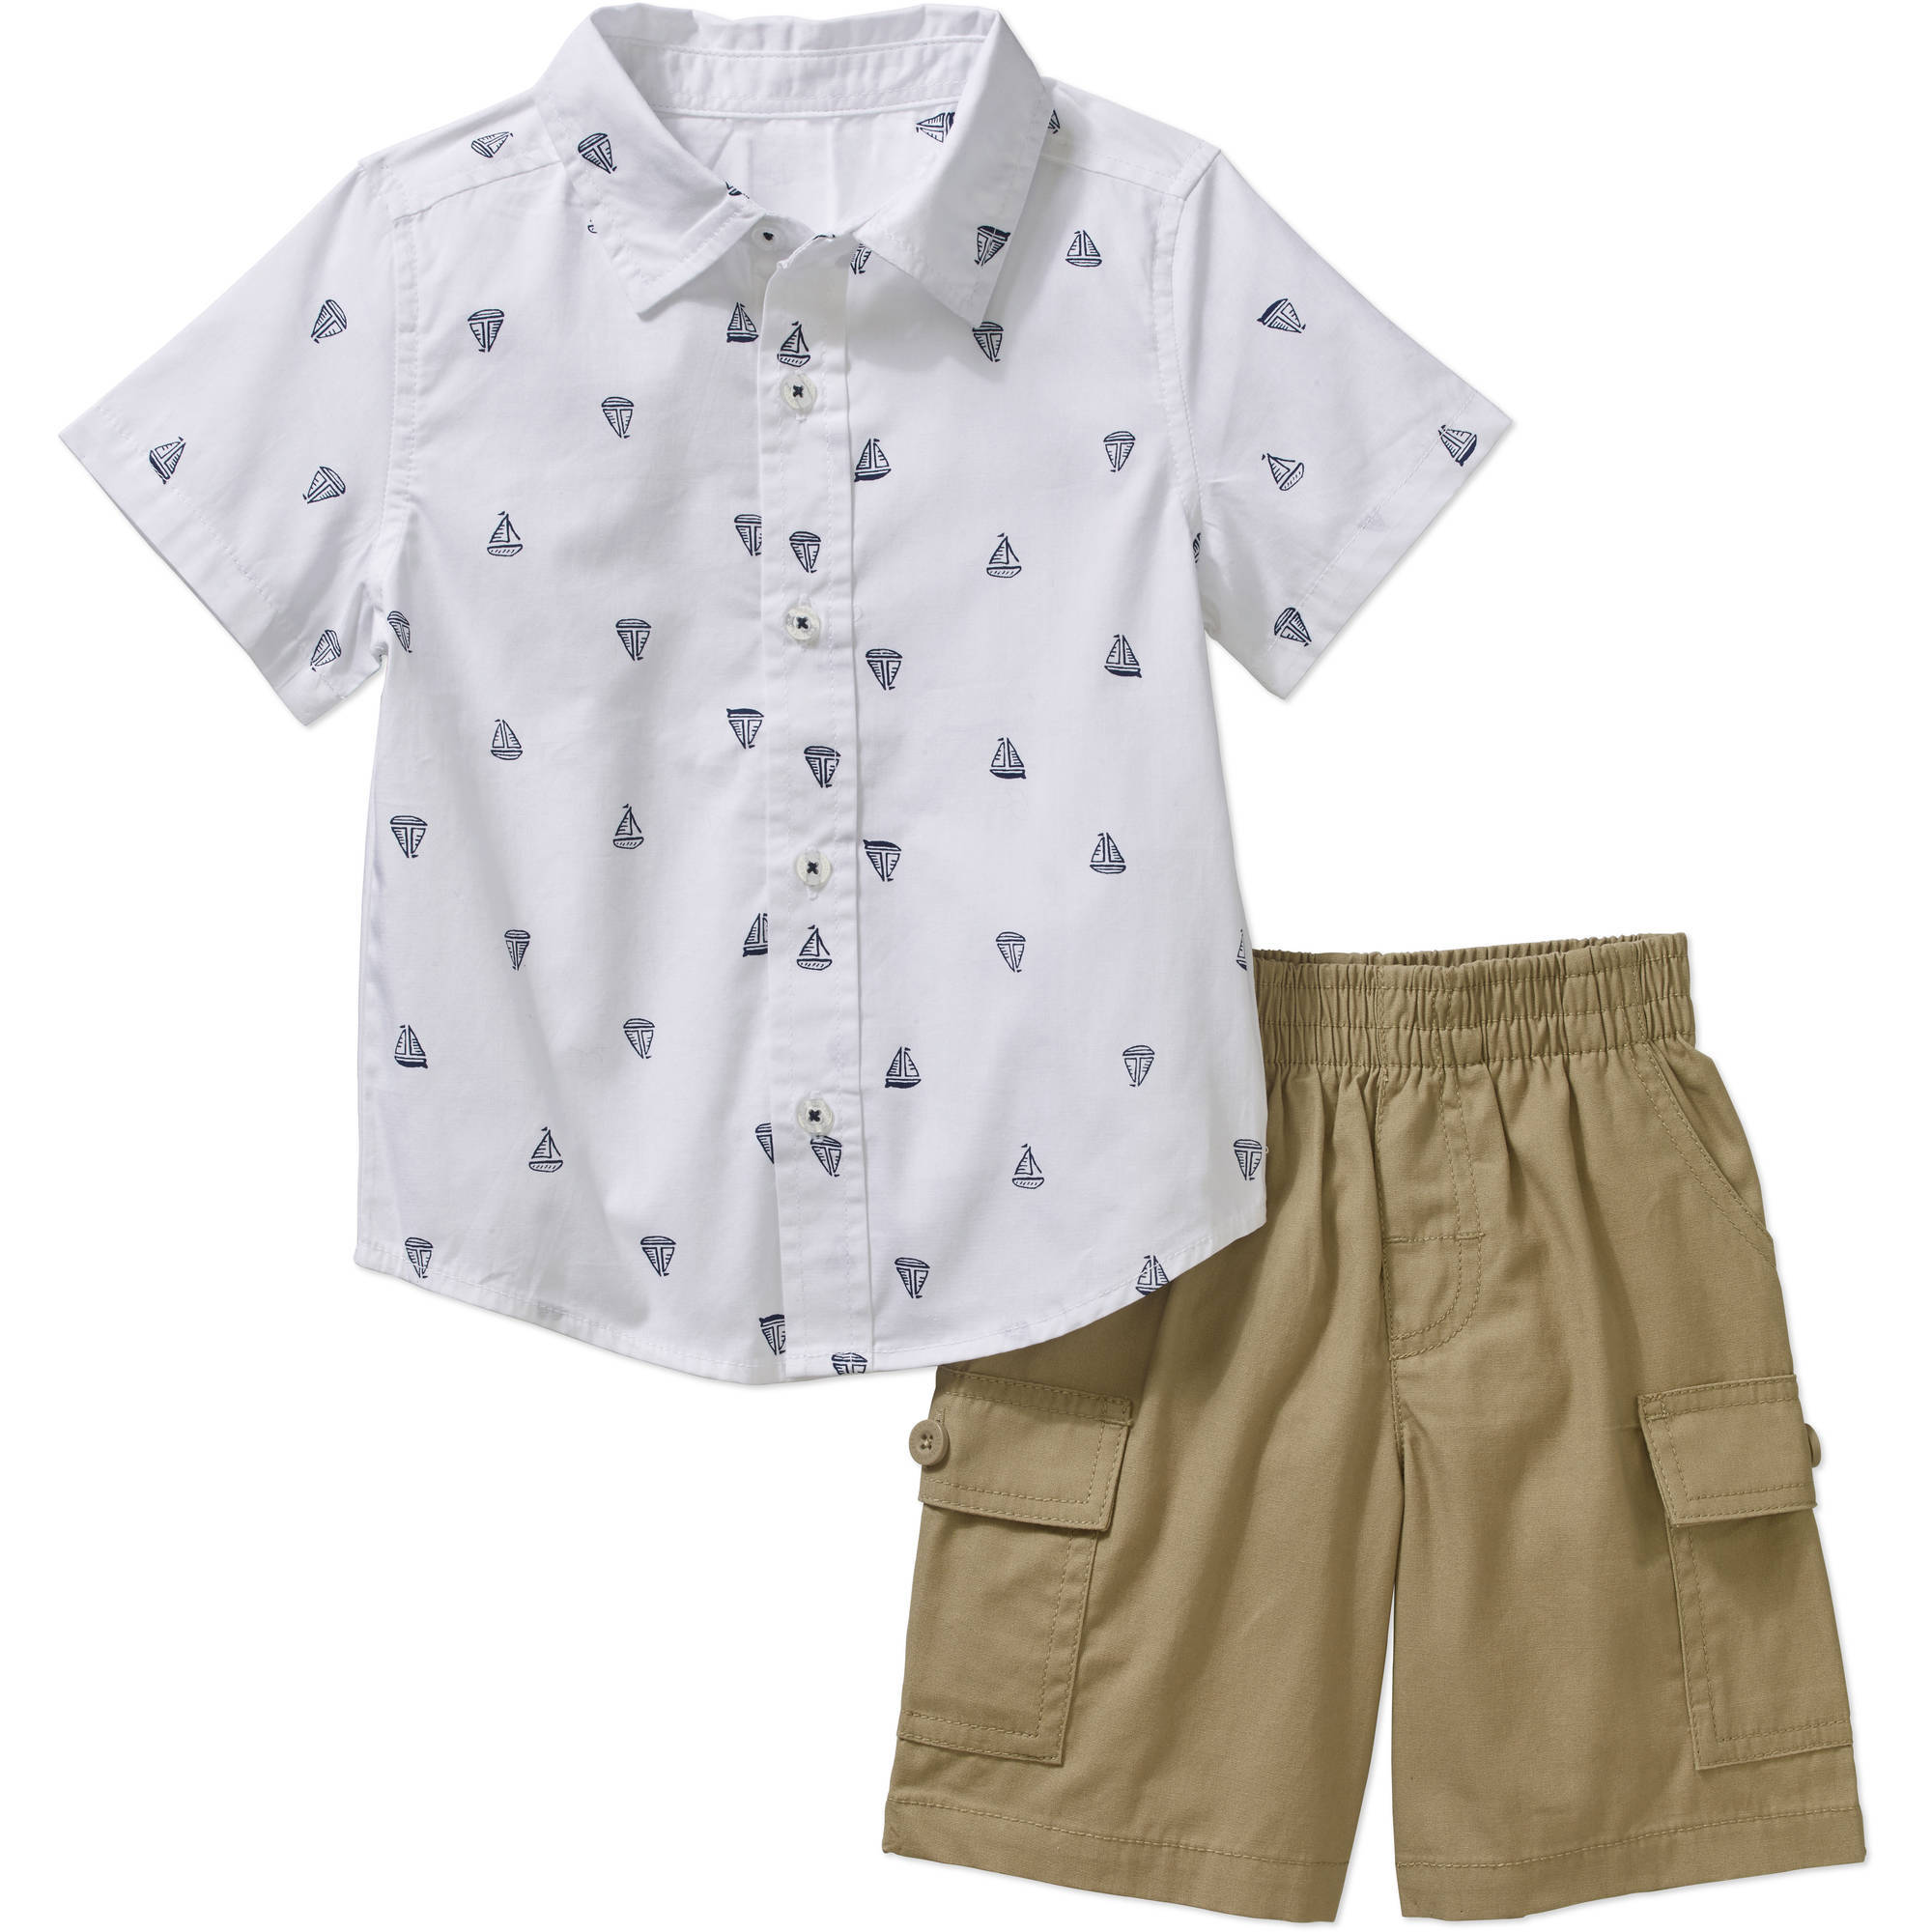 Healthtex Baby Toddler Boy Short Sleeve Button Down Shirt and Cargo Short 2-piece Outfit Set